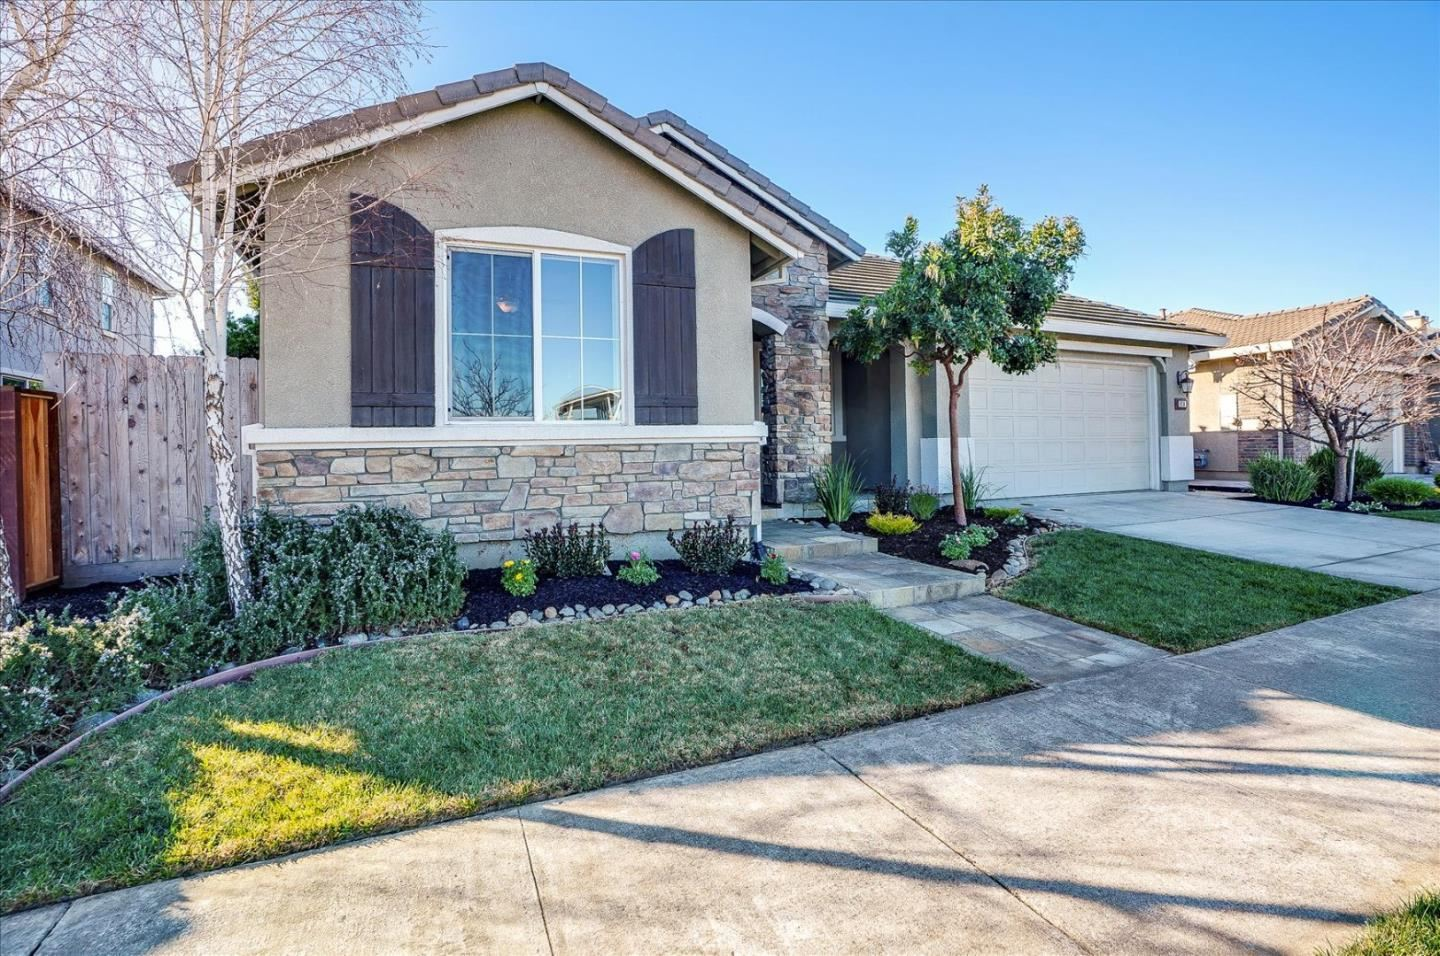 Photo for 970 Pueblo ST, GILROY, CA 95020 (MLS # ML81831068)